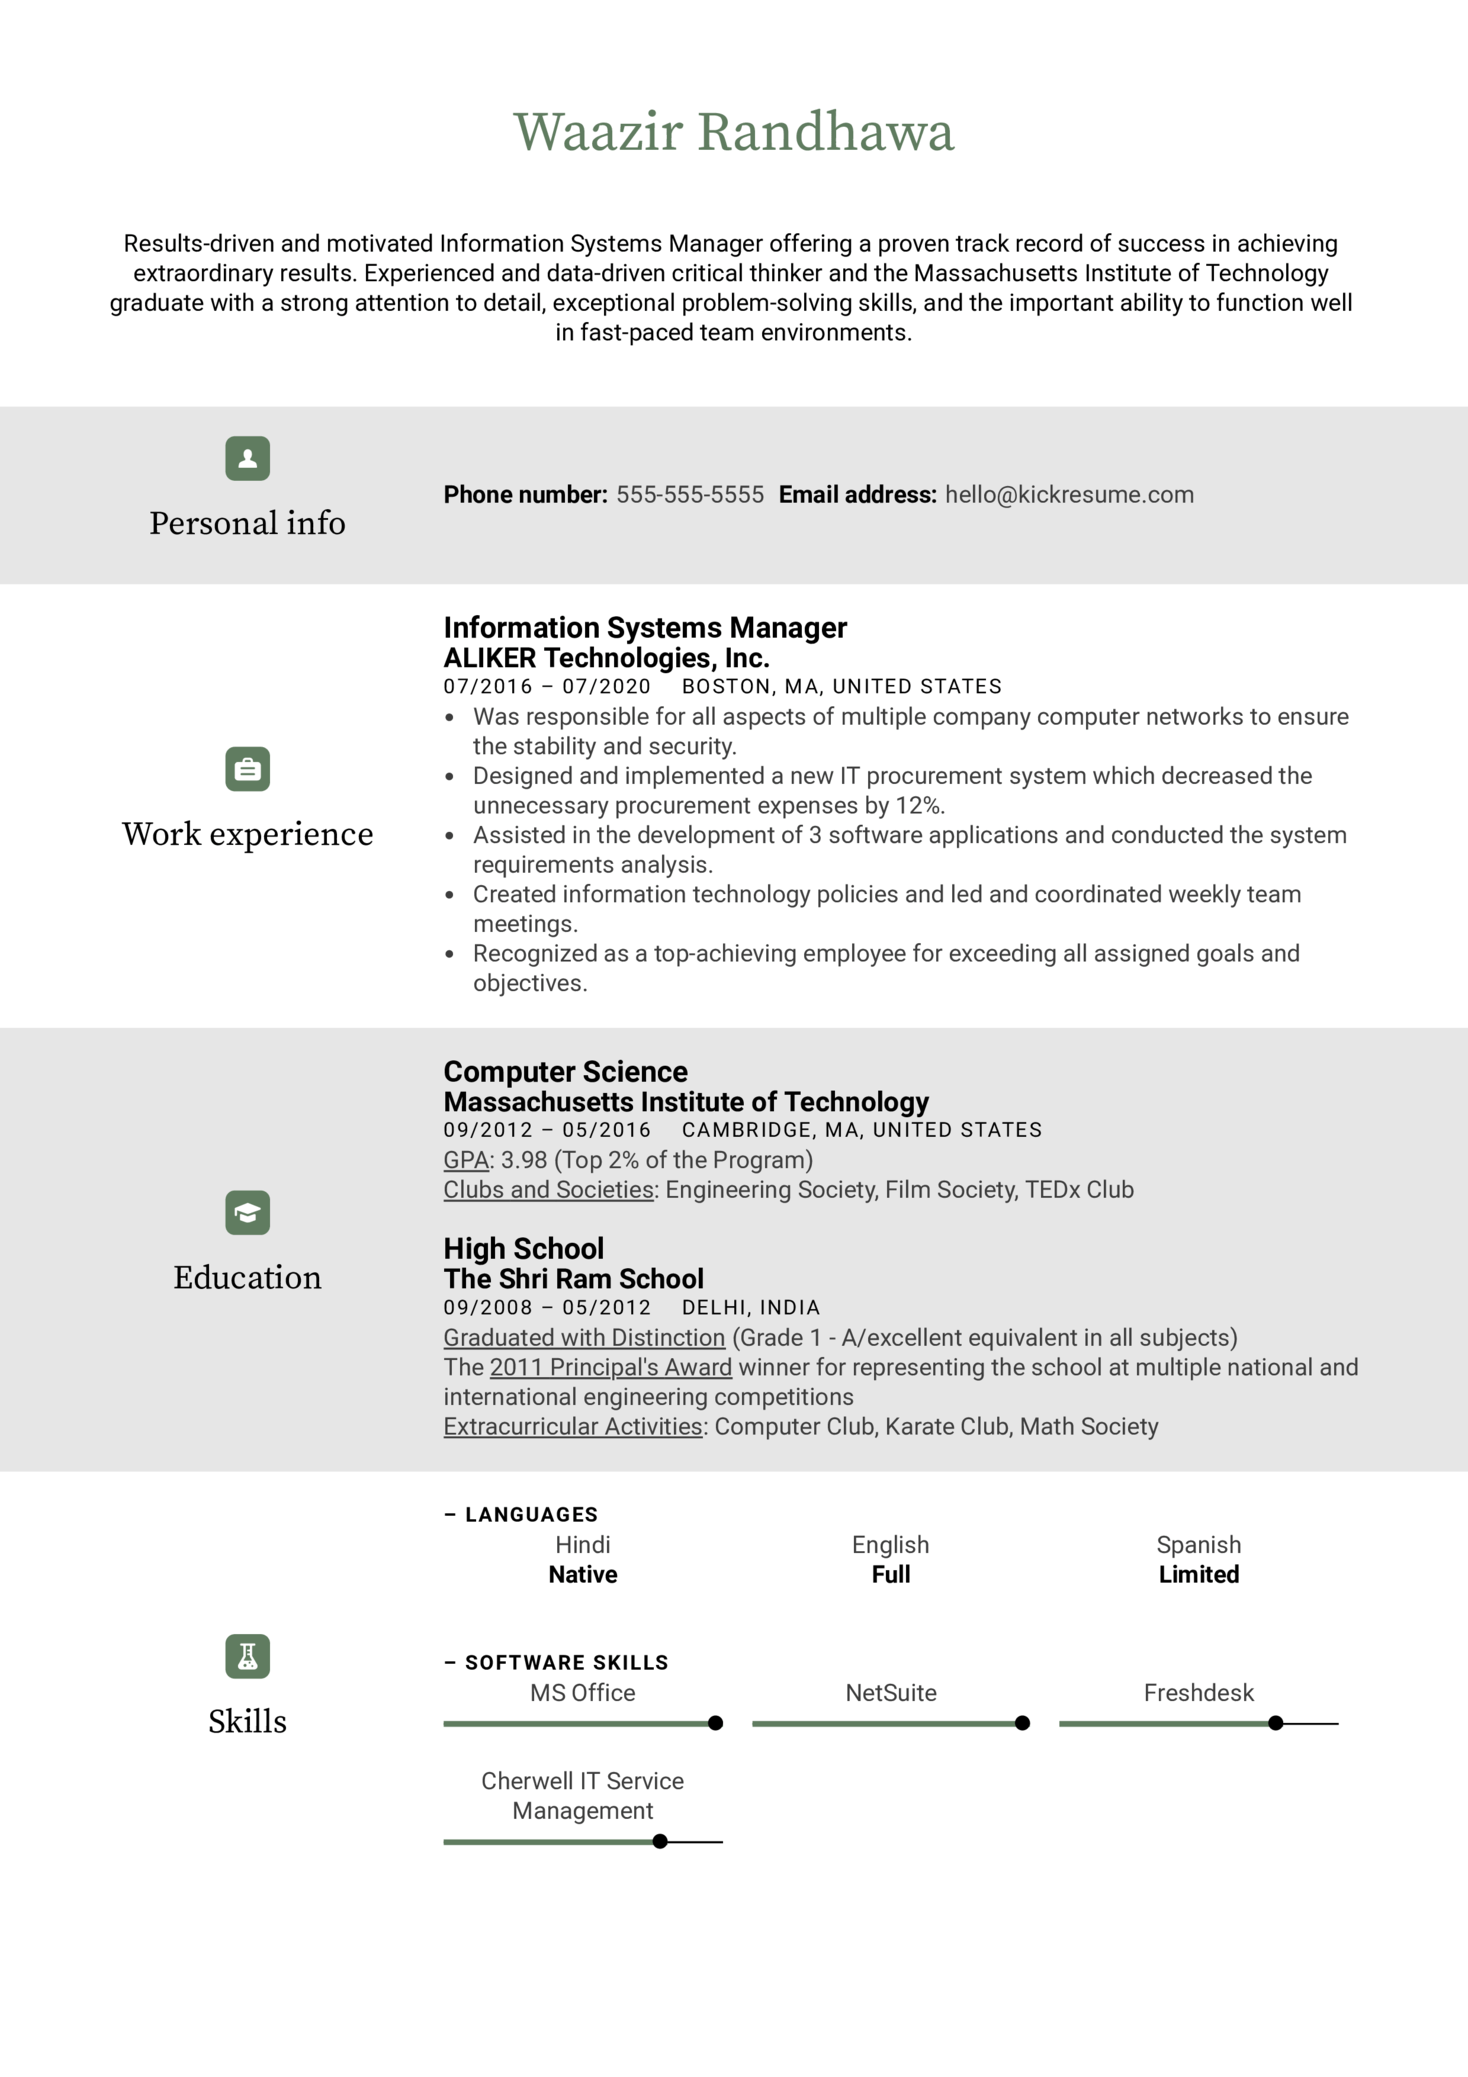 Information Systems Manager Resume Example (časť 1)